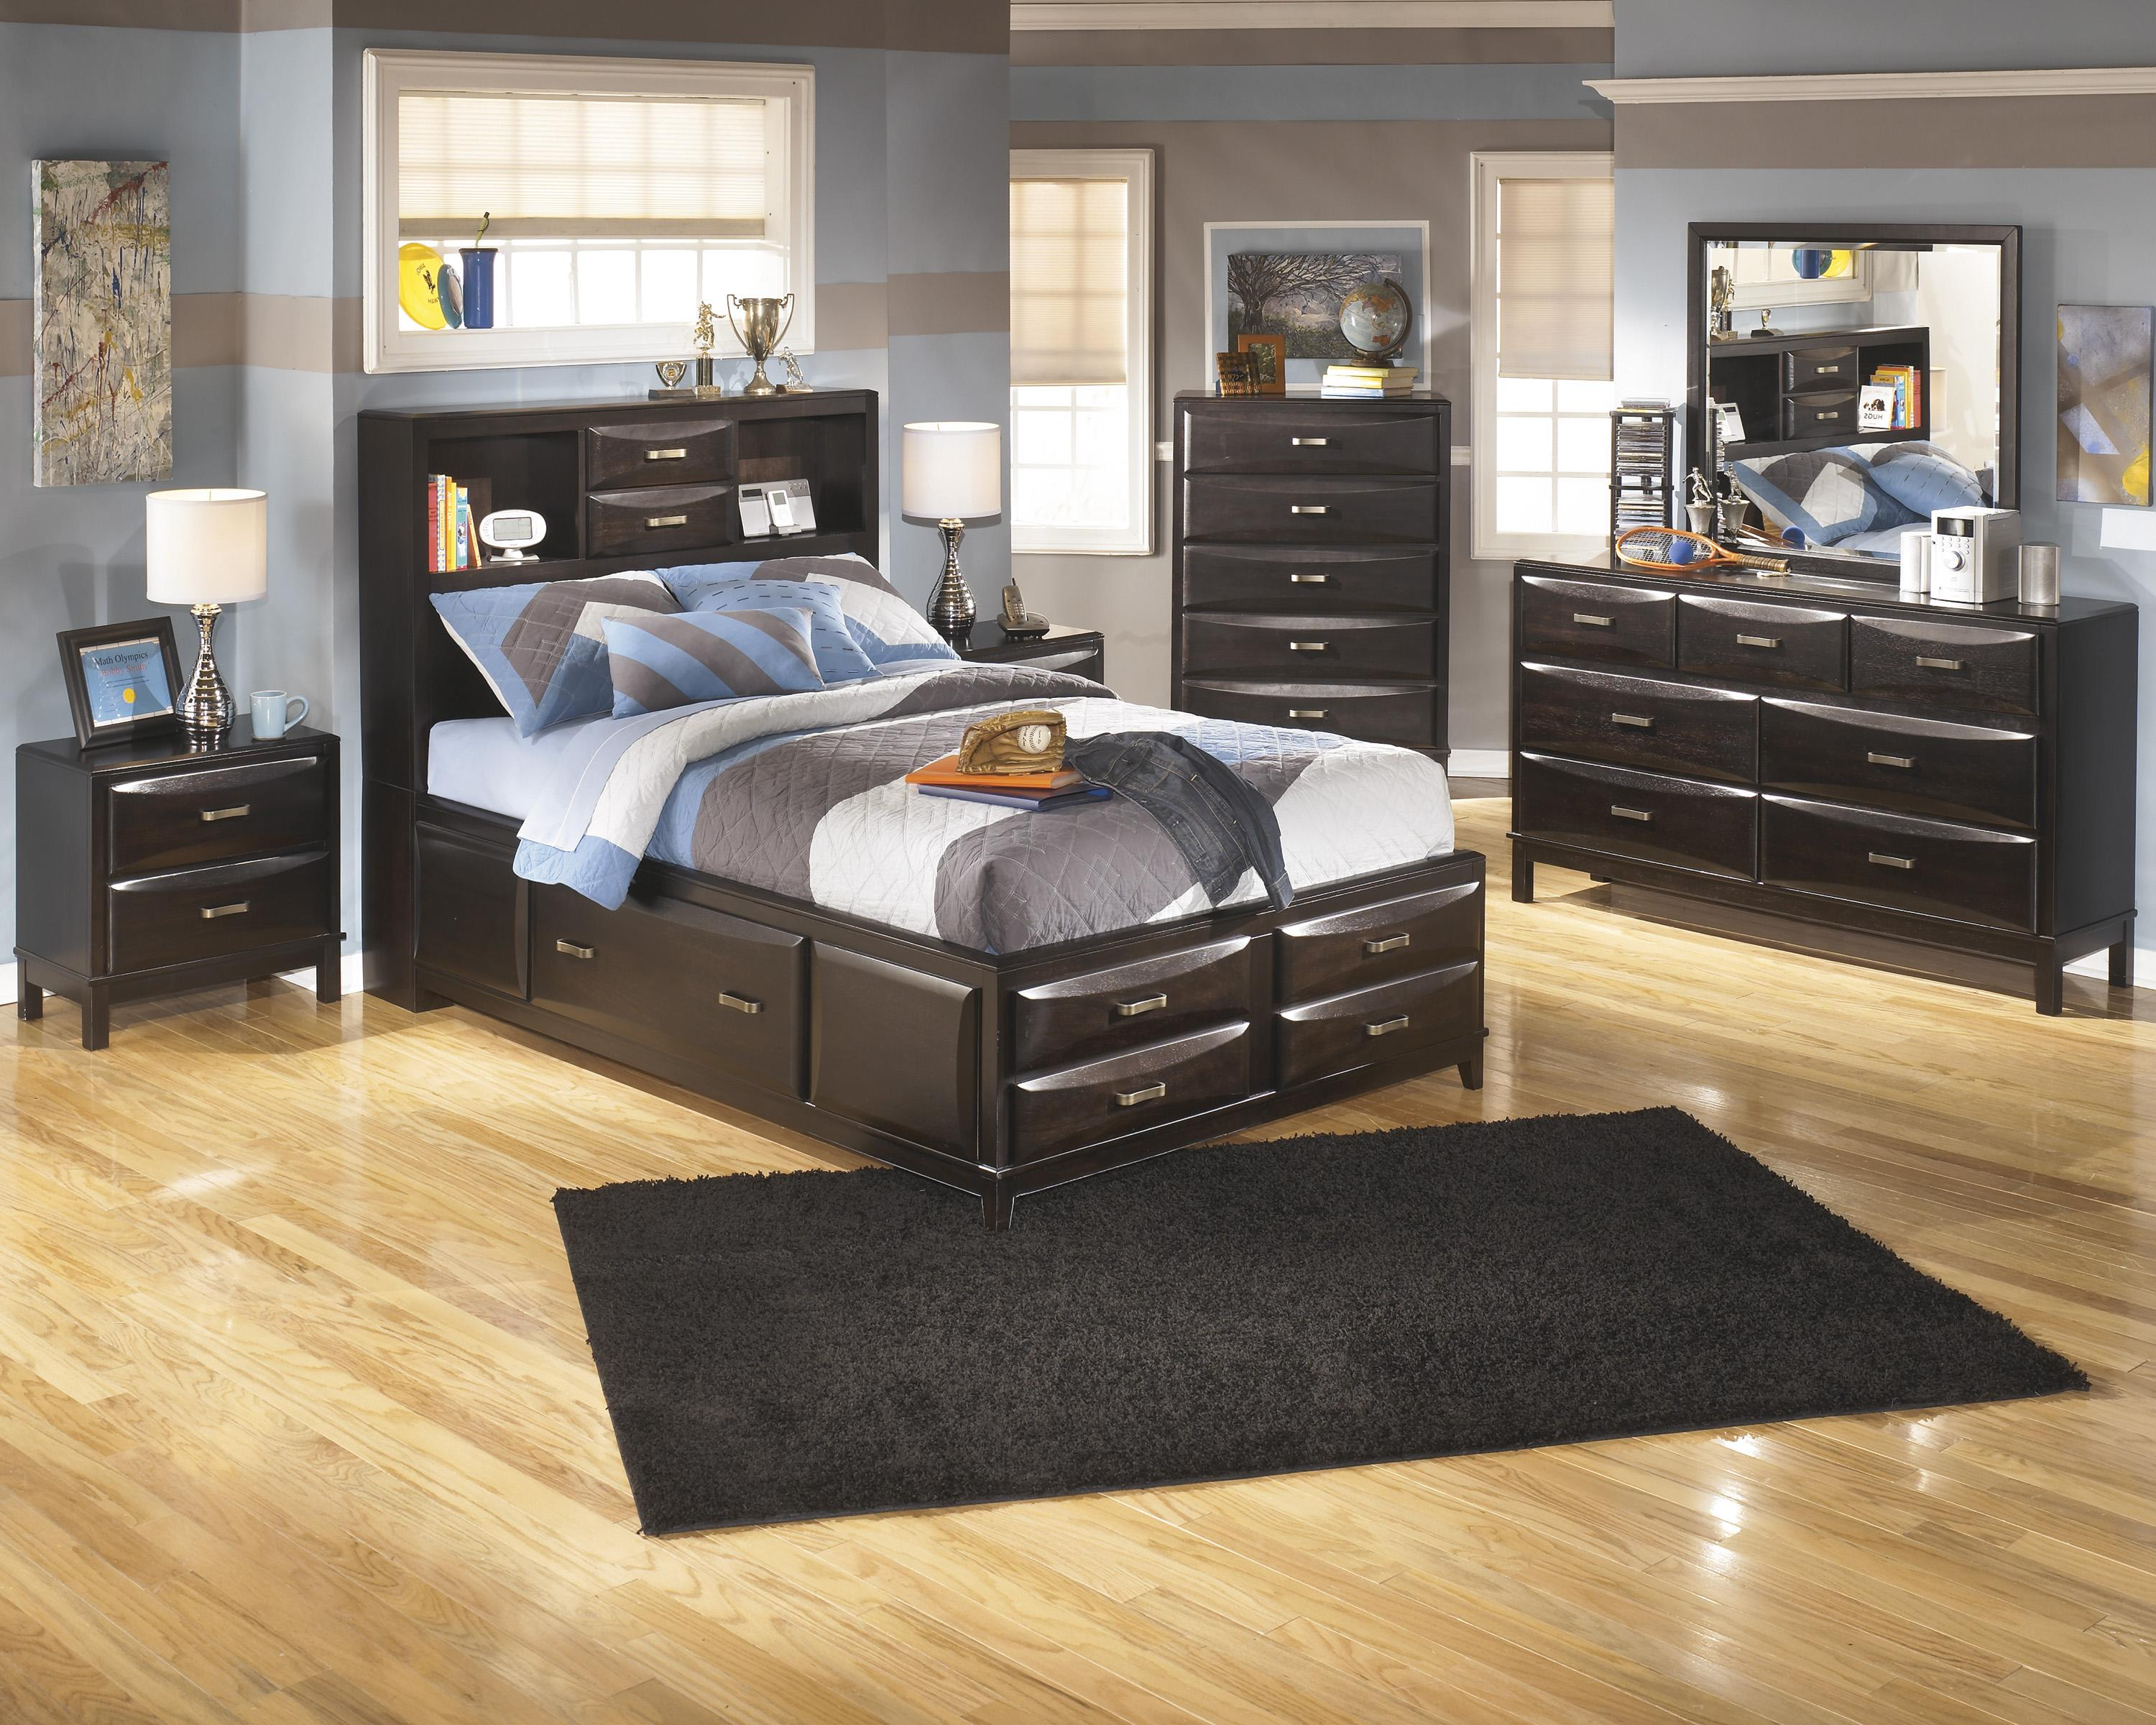 Ashley Furniture Kira Full Bedroom Group - Item Number: B473 F Bedroom Group 1